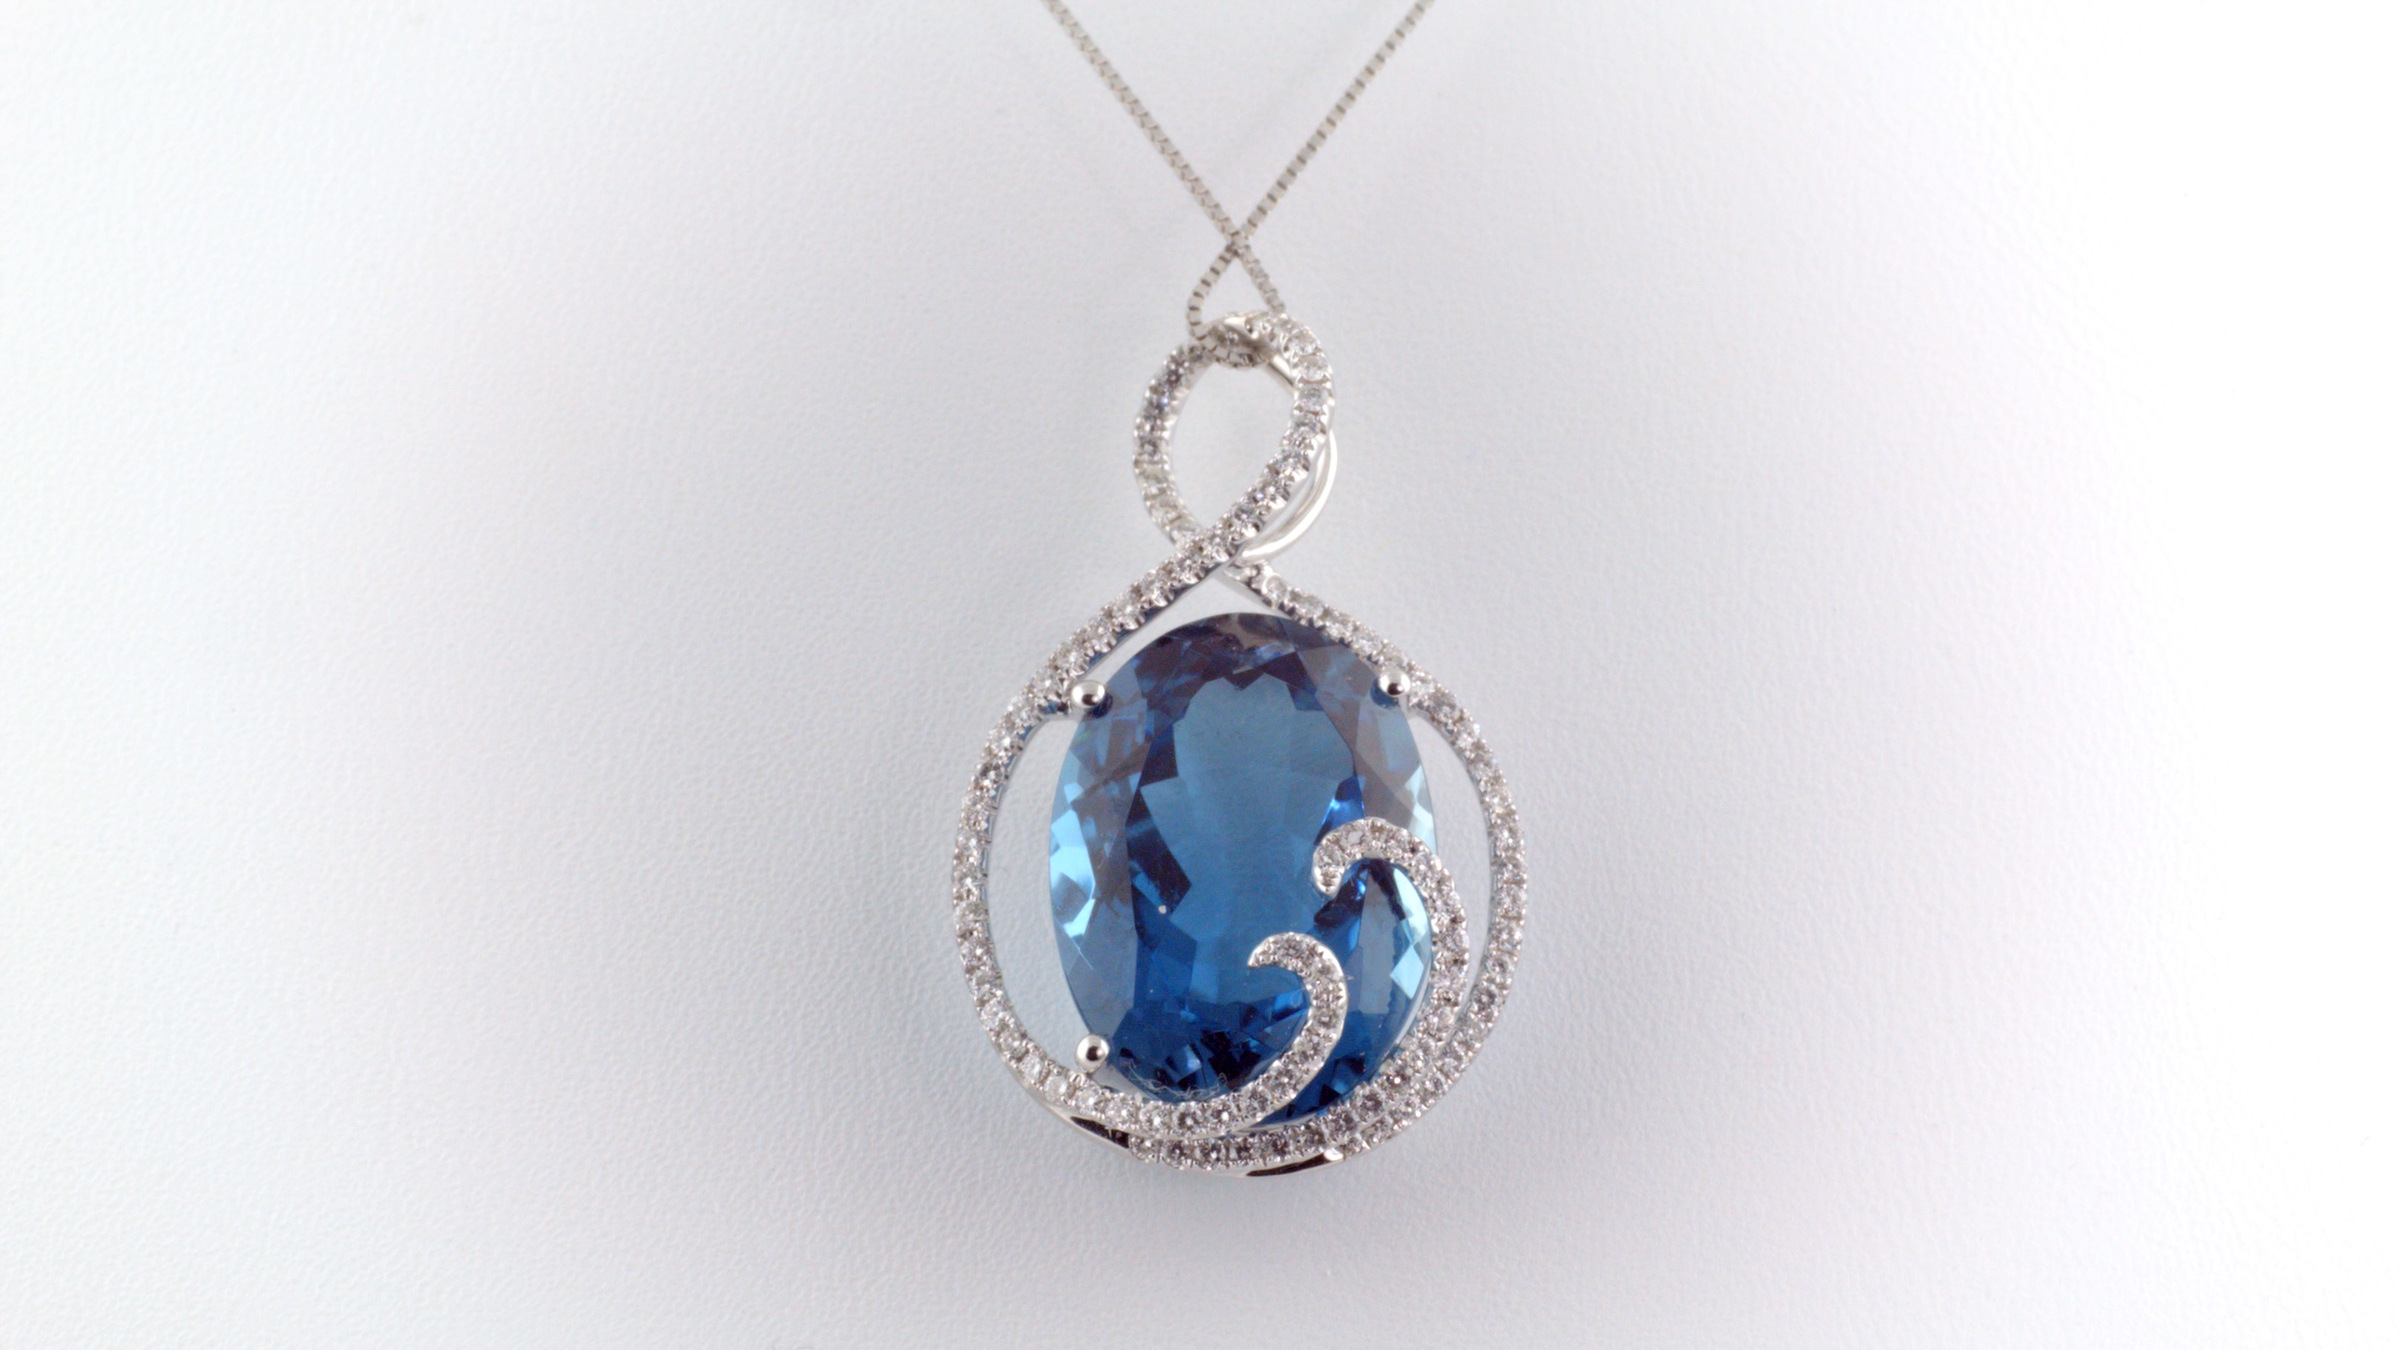 Blue topaz and diamond pendant necklace in 18K white gold.